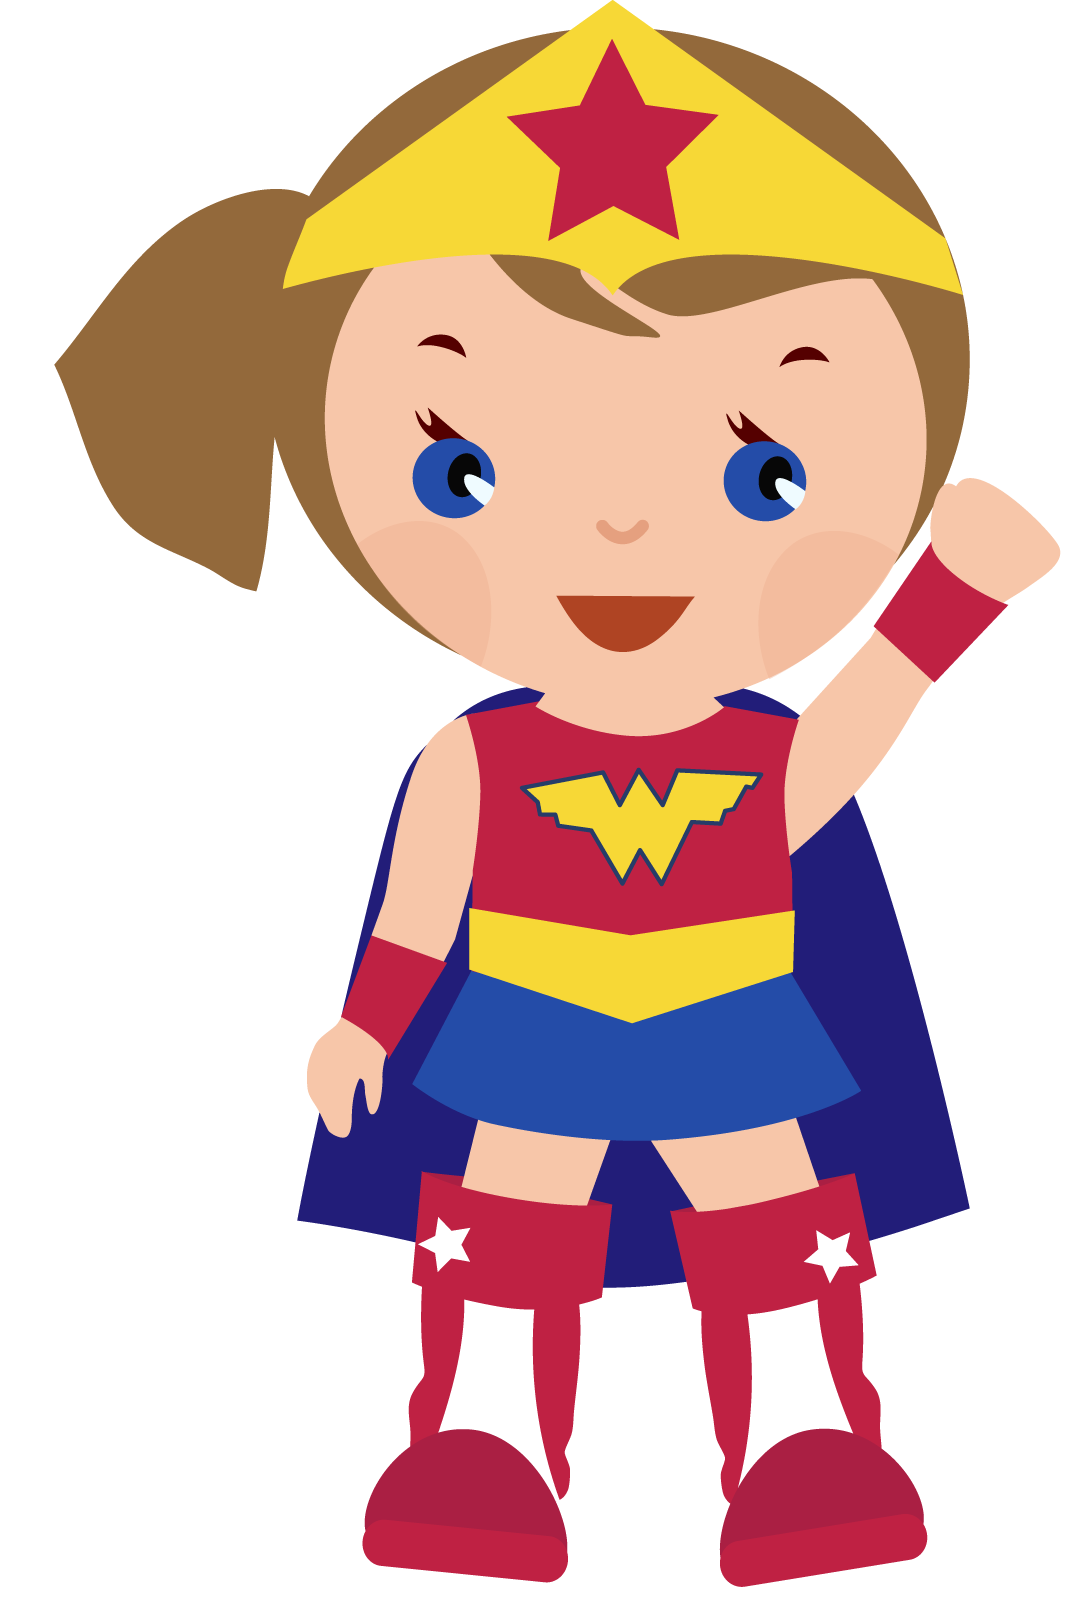 Clipart of a woman and a girl png black and white Wonder Woman Cute Clipart - Clipart Kid png black and white